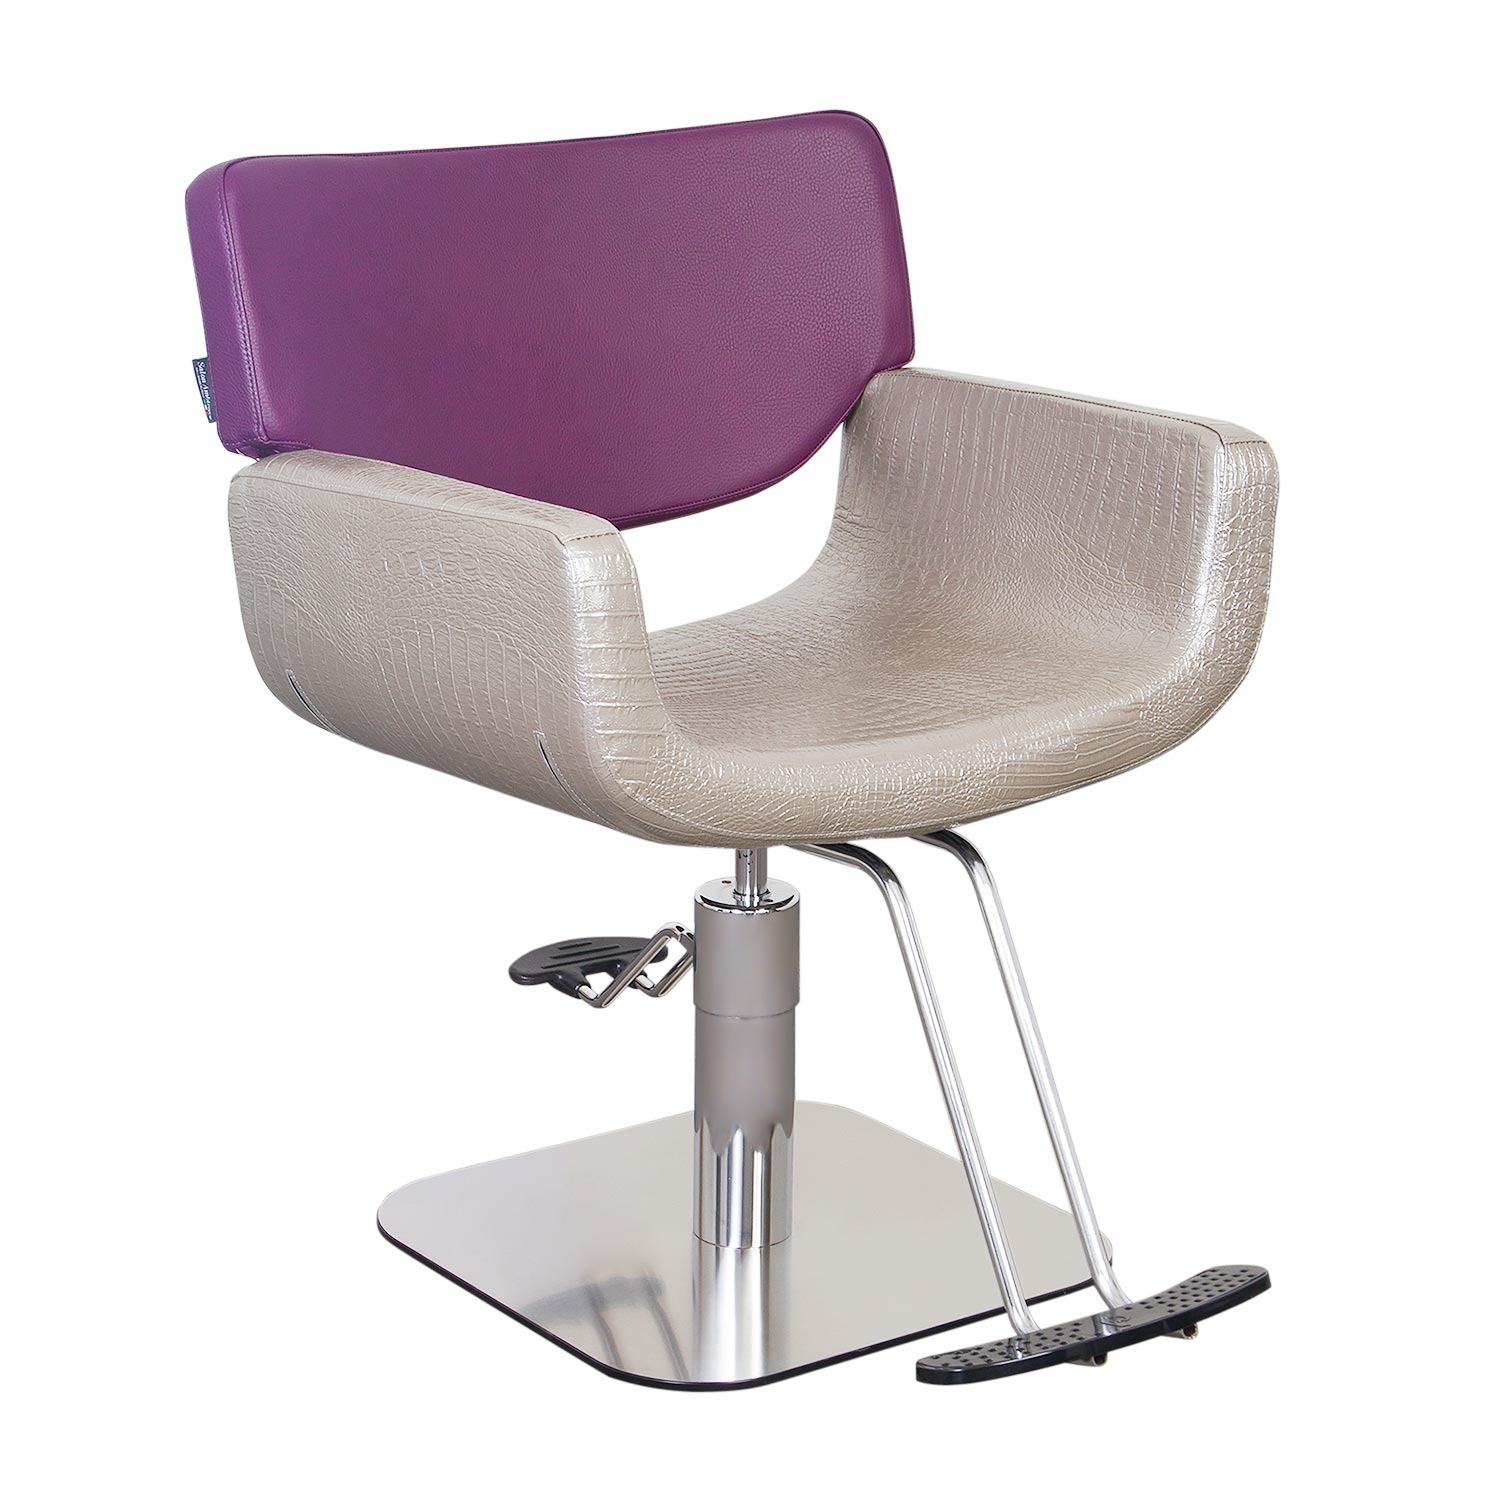 Quadro Hair Salon Chair by Salon Ambience alternative product image 12